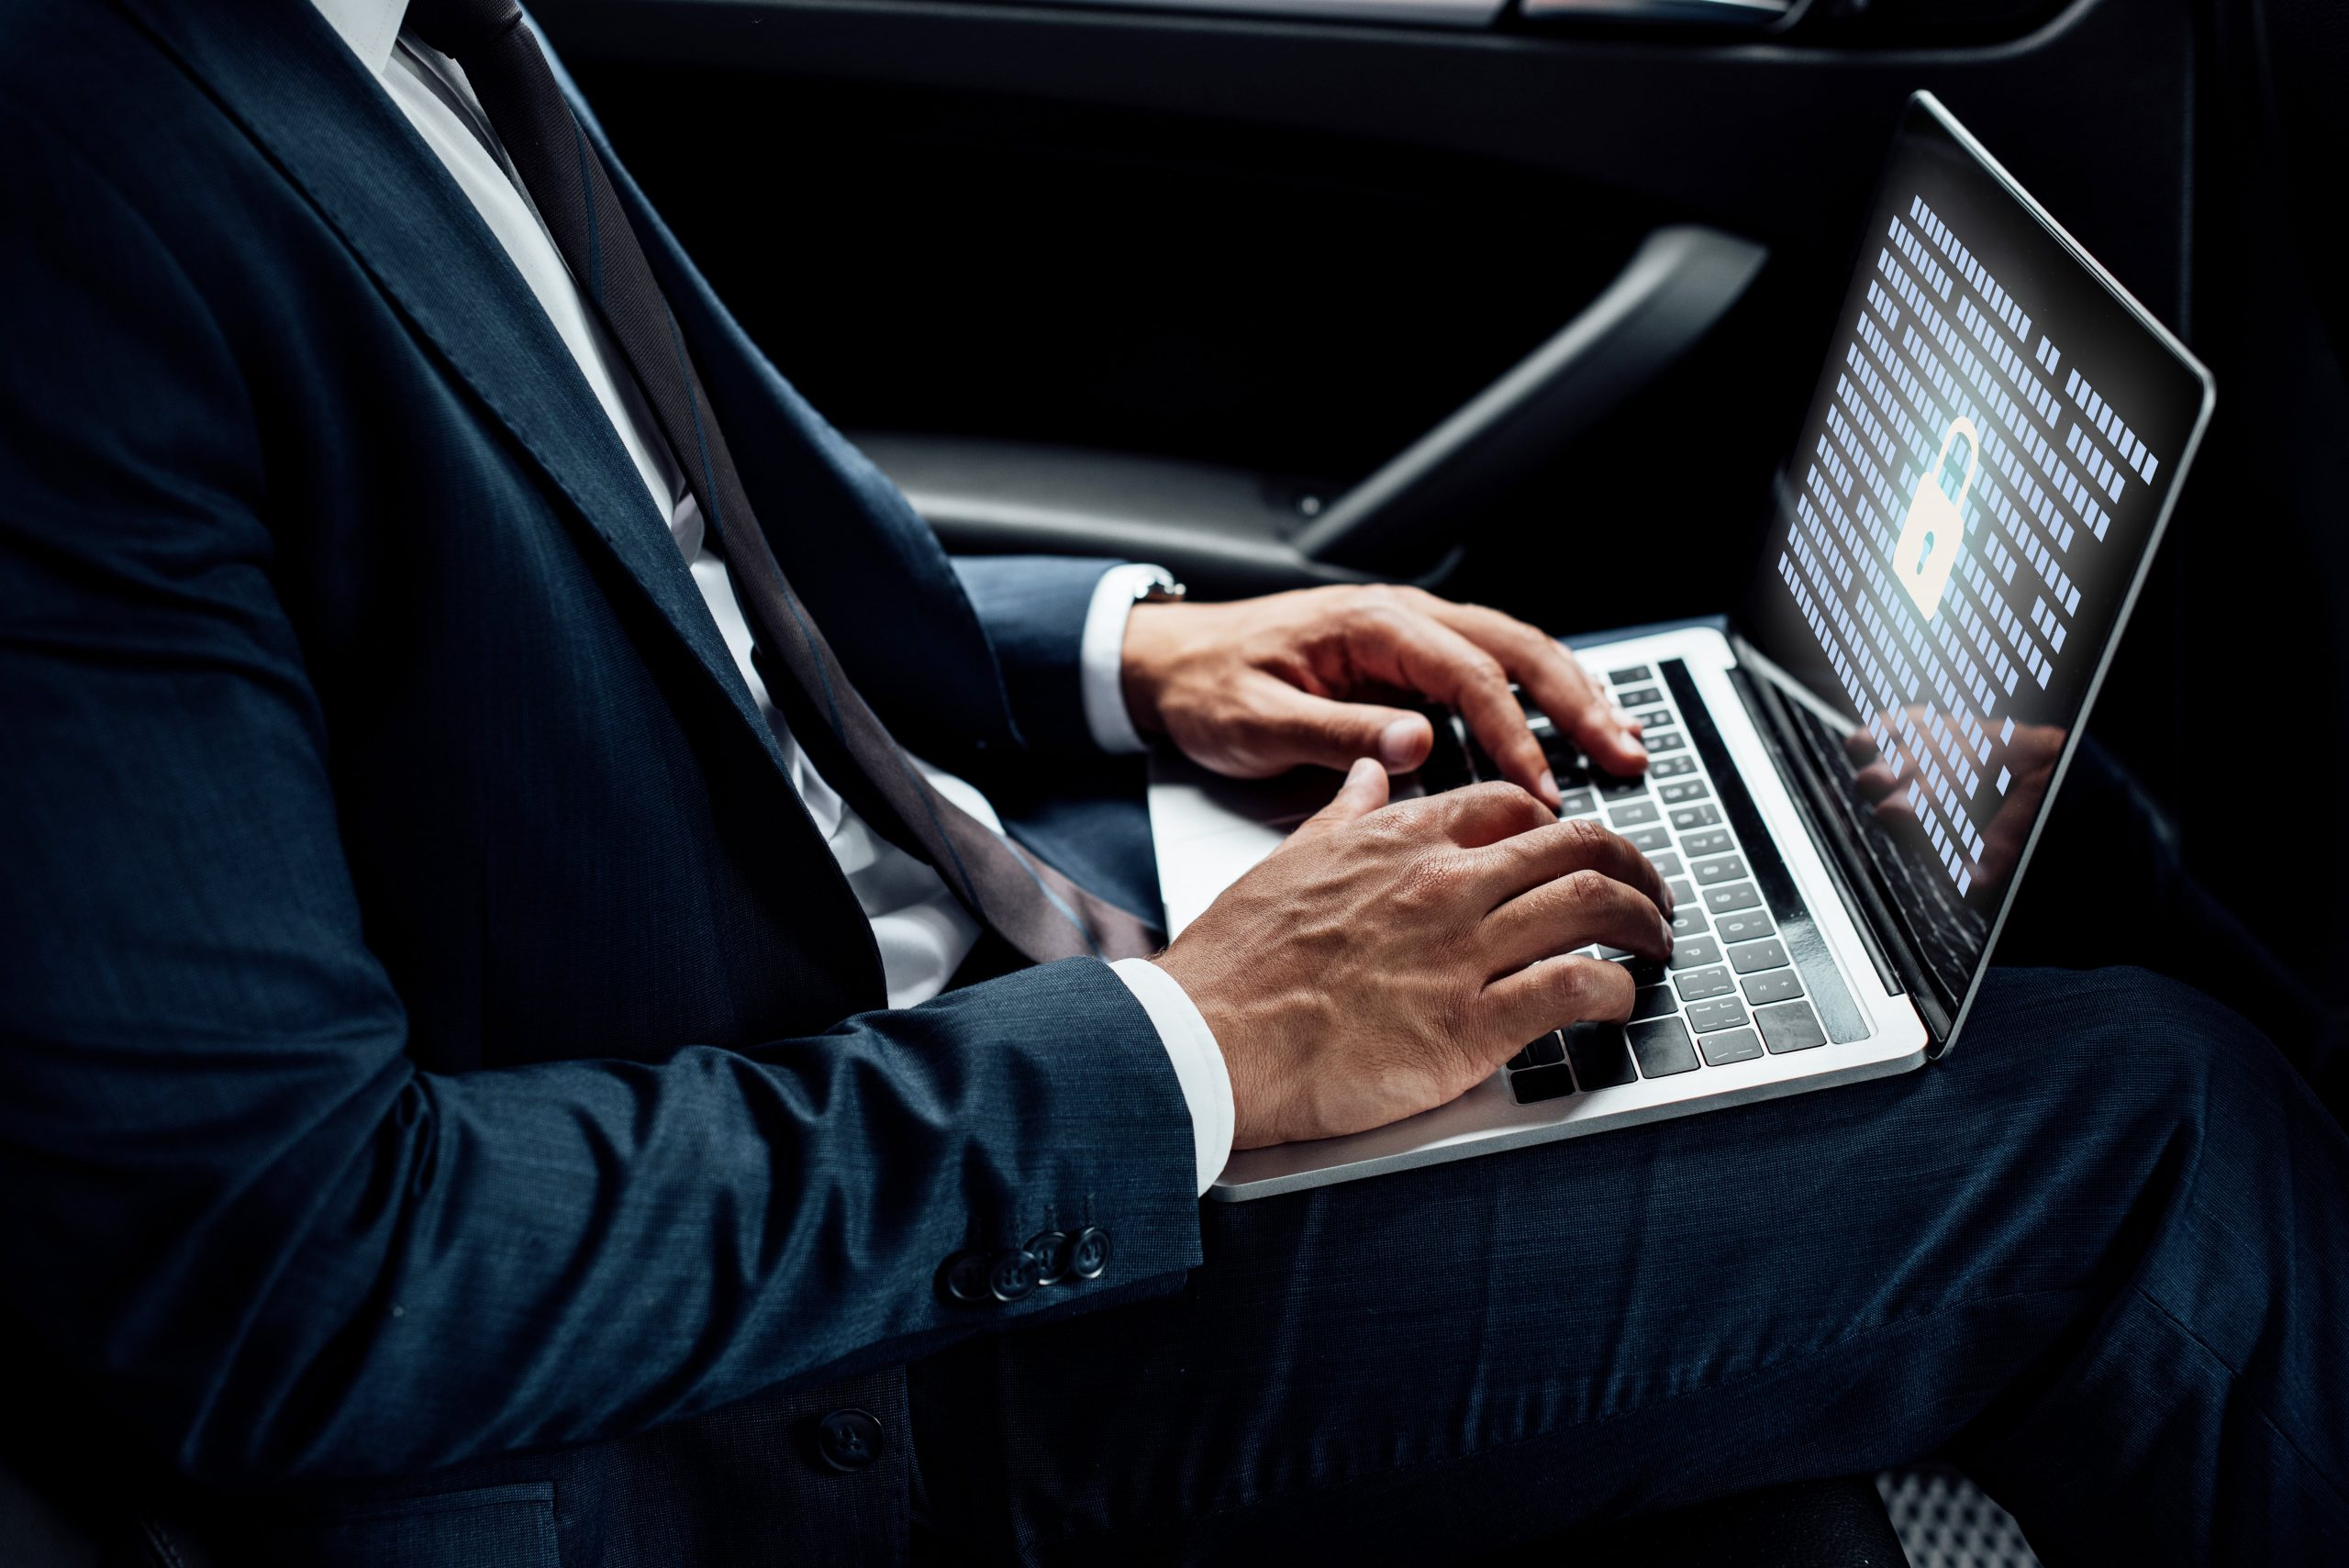 Man working on Laptop computer driving to New York